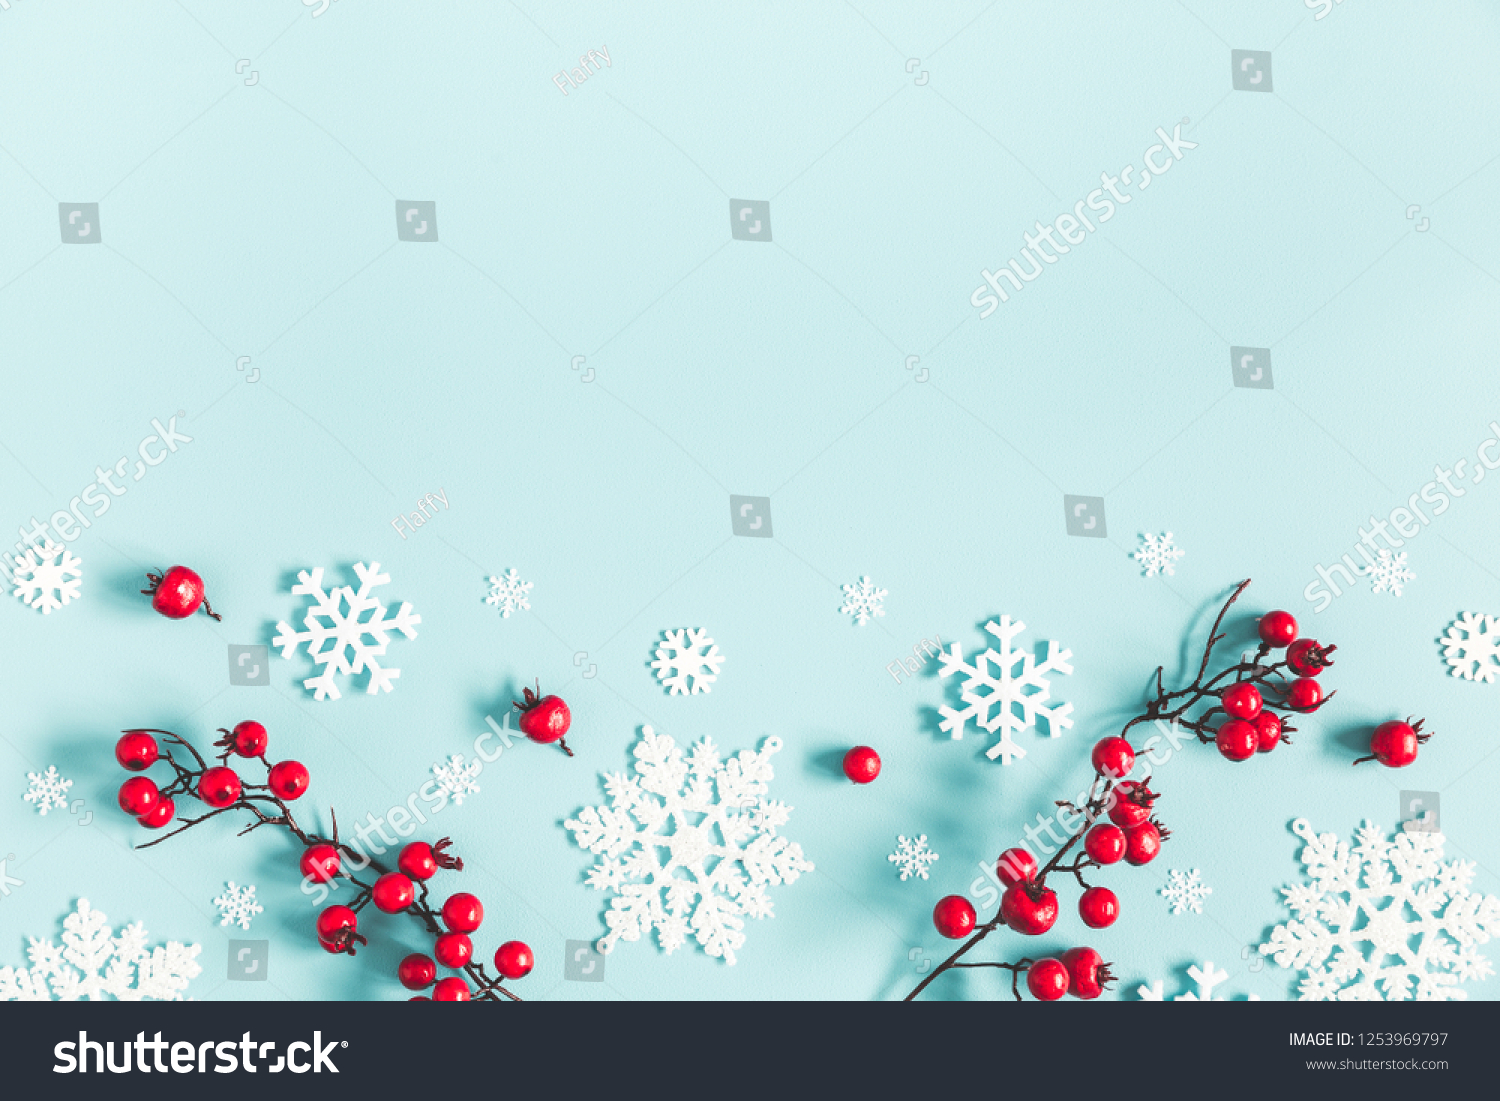 Christmas or winter composition. Frame made of snowflakes and red berries on pastel blue background. Christmas, winter, new year concept. Flat lay, top view, copy space #1253969797